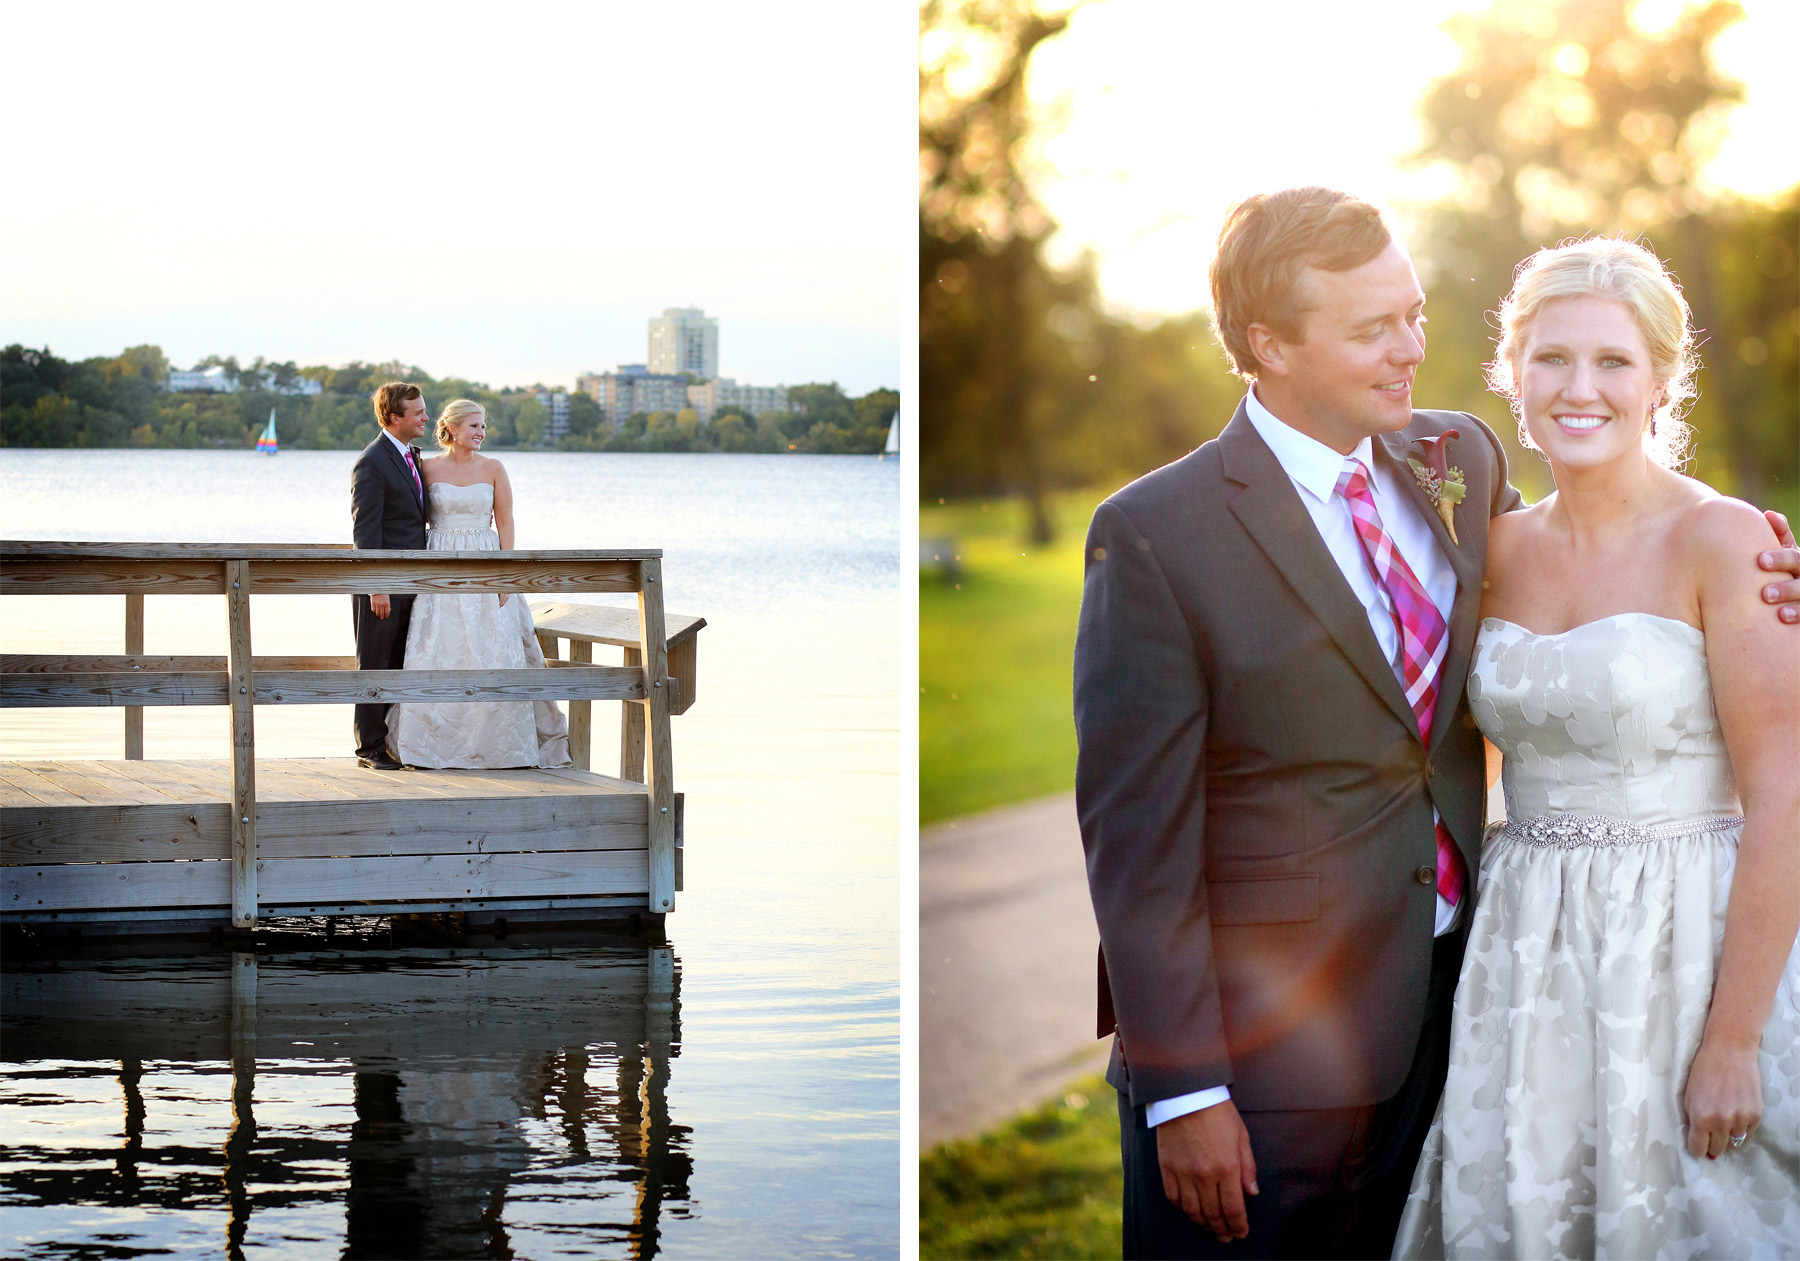 12-Minneapolis-Minnesota-Wedding-Photography-by-Vick-Photography--Lake-Calhoun-Sunset-Kristen-&-Nick.jpg